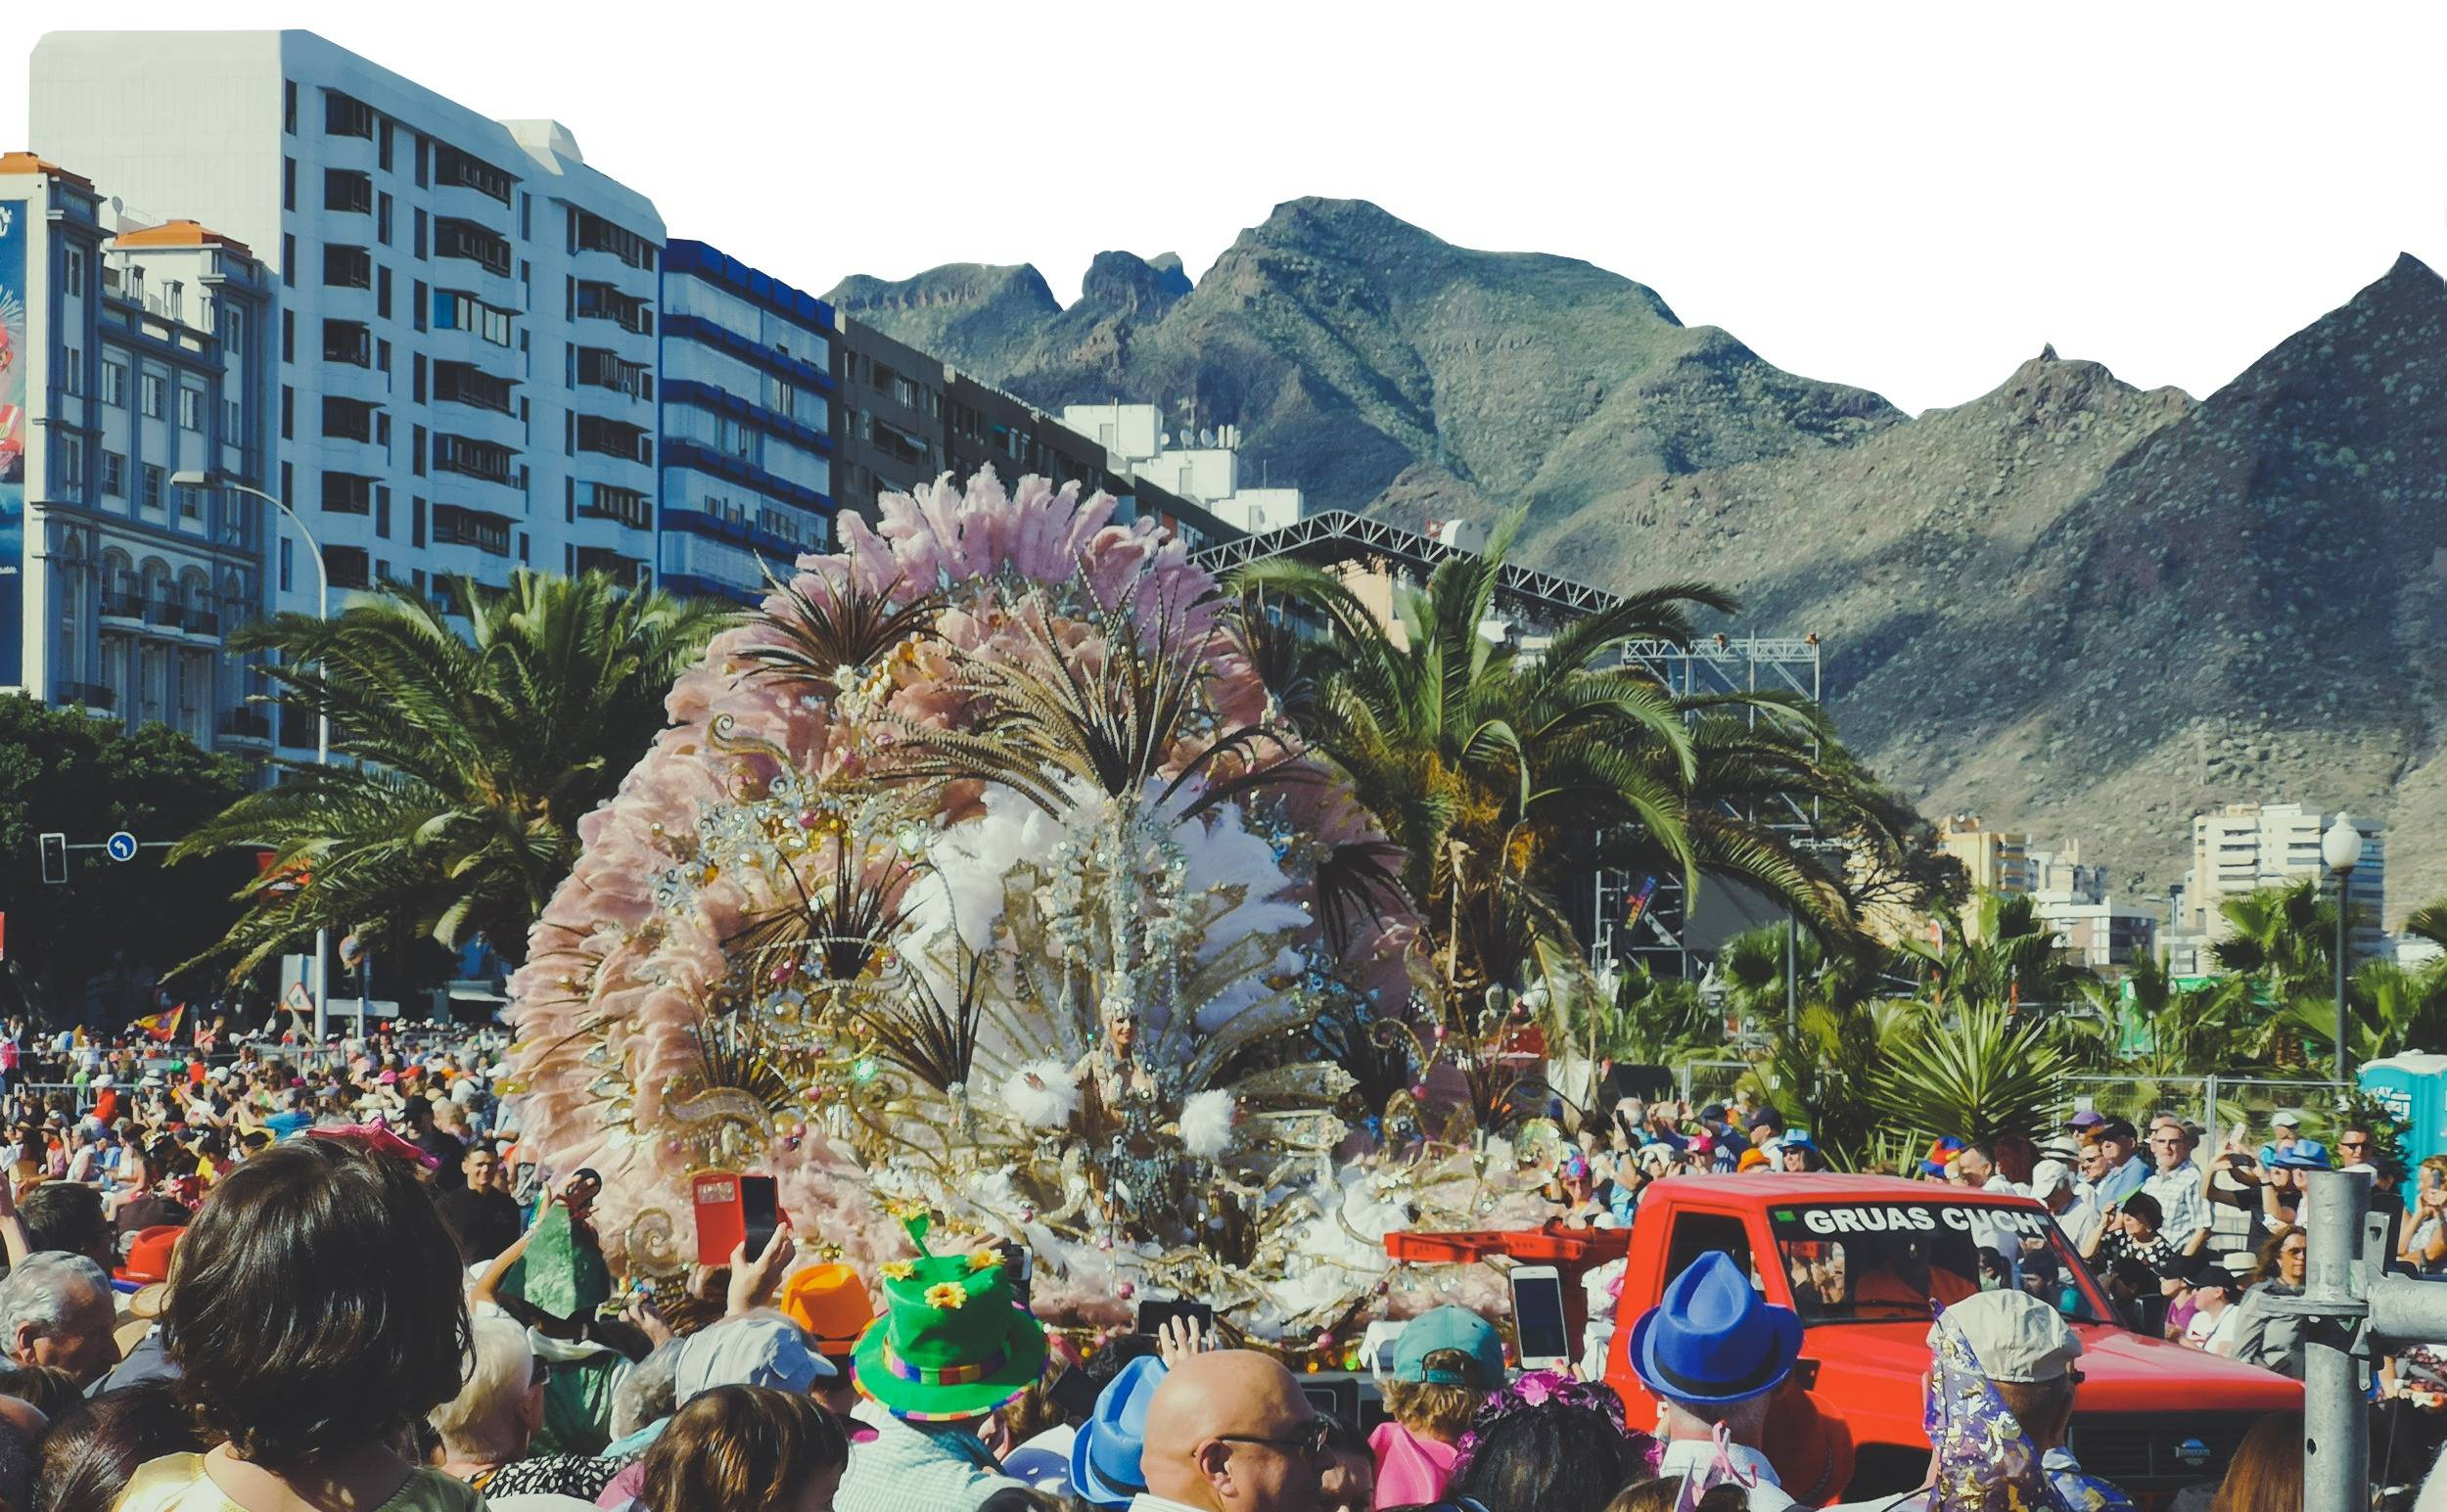 Carnival of Santa Cruz de Tenerife is the second biggest in the whole world. Photo by Alis Monte [CC BY-SA 4.0], via Connecting the Dots